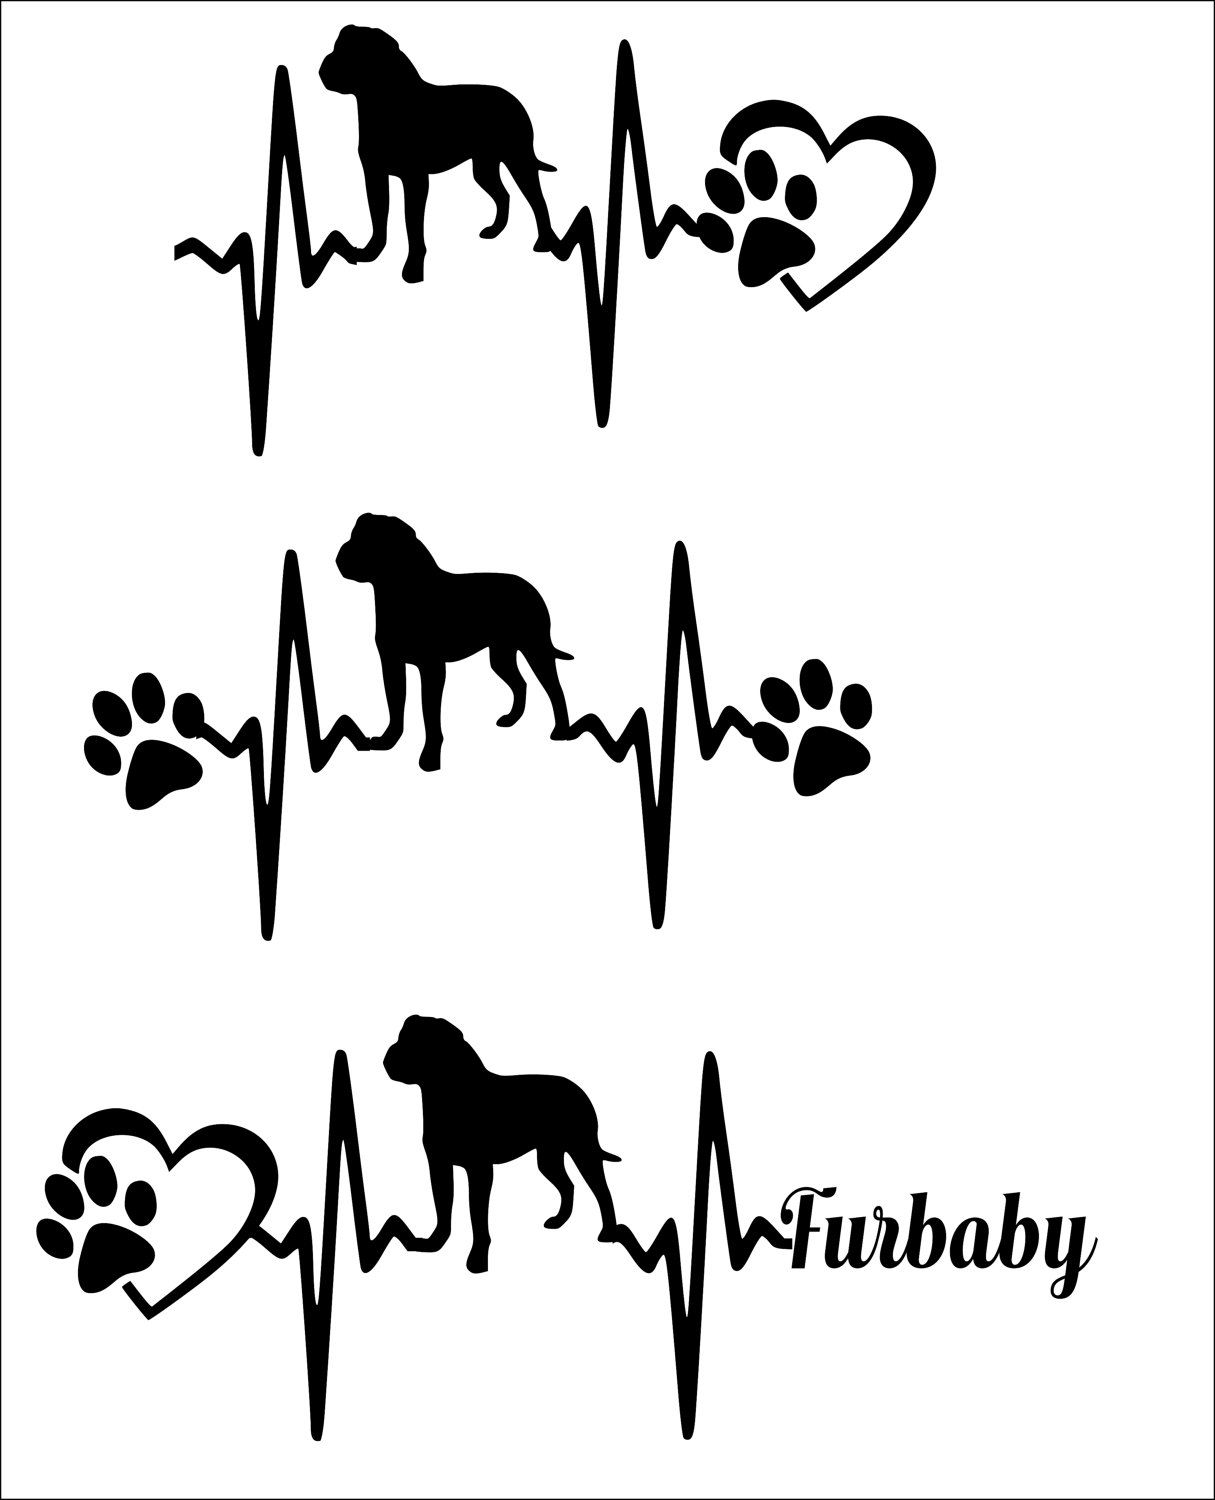 Svg Cut File Rottweiler Solid Heartbeat Paw With Heart